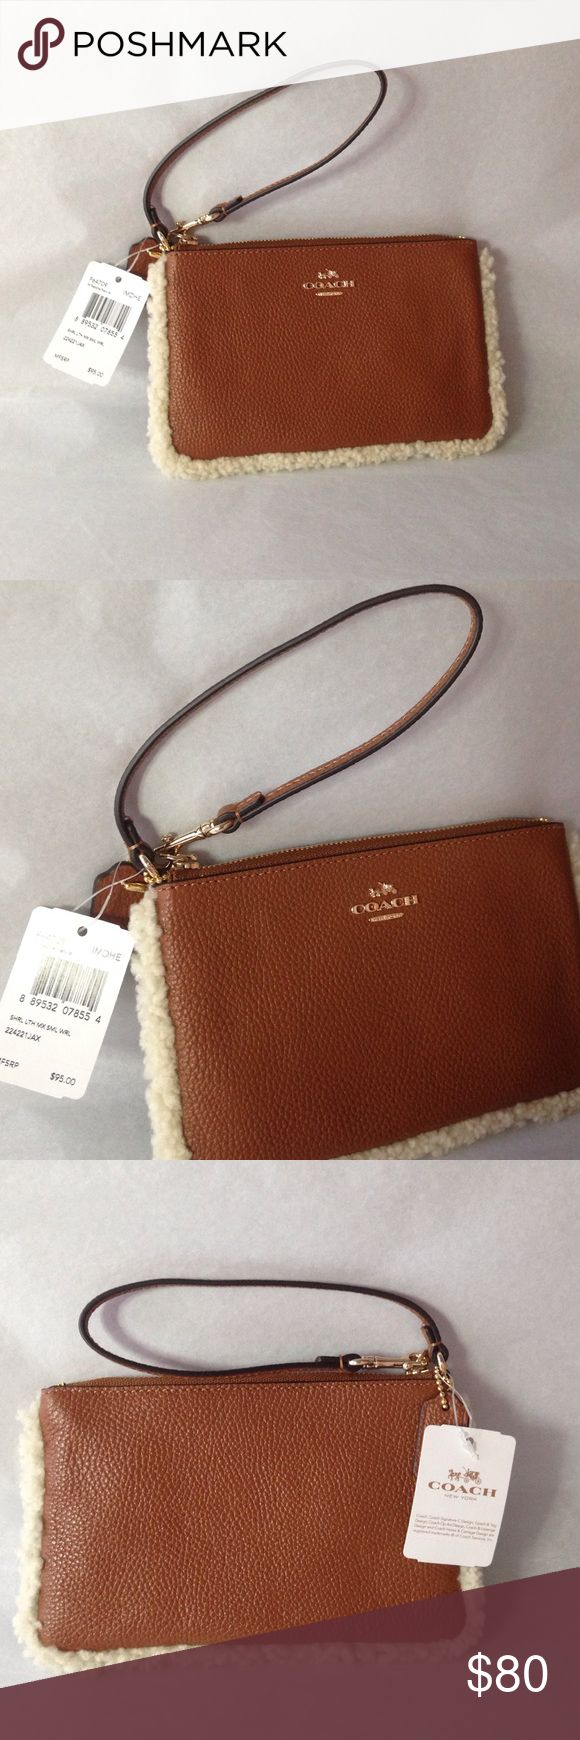 NWT Coach Pebbled Leather Wristlet Brand new with tags, saddle leather with shearling on all 3 sides. Coach Bags Clutches & Wristlets